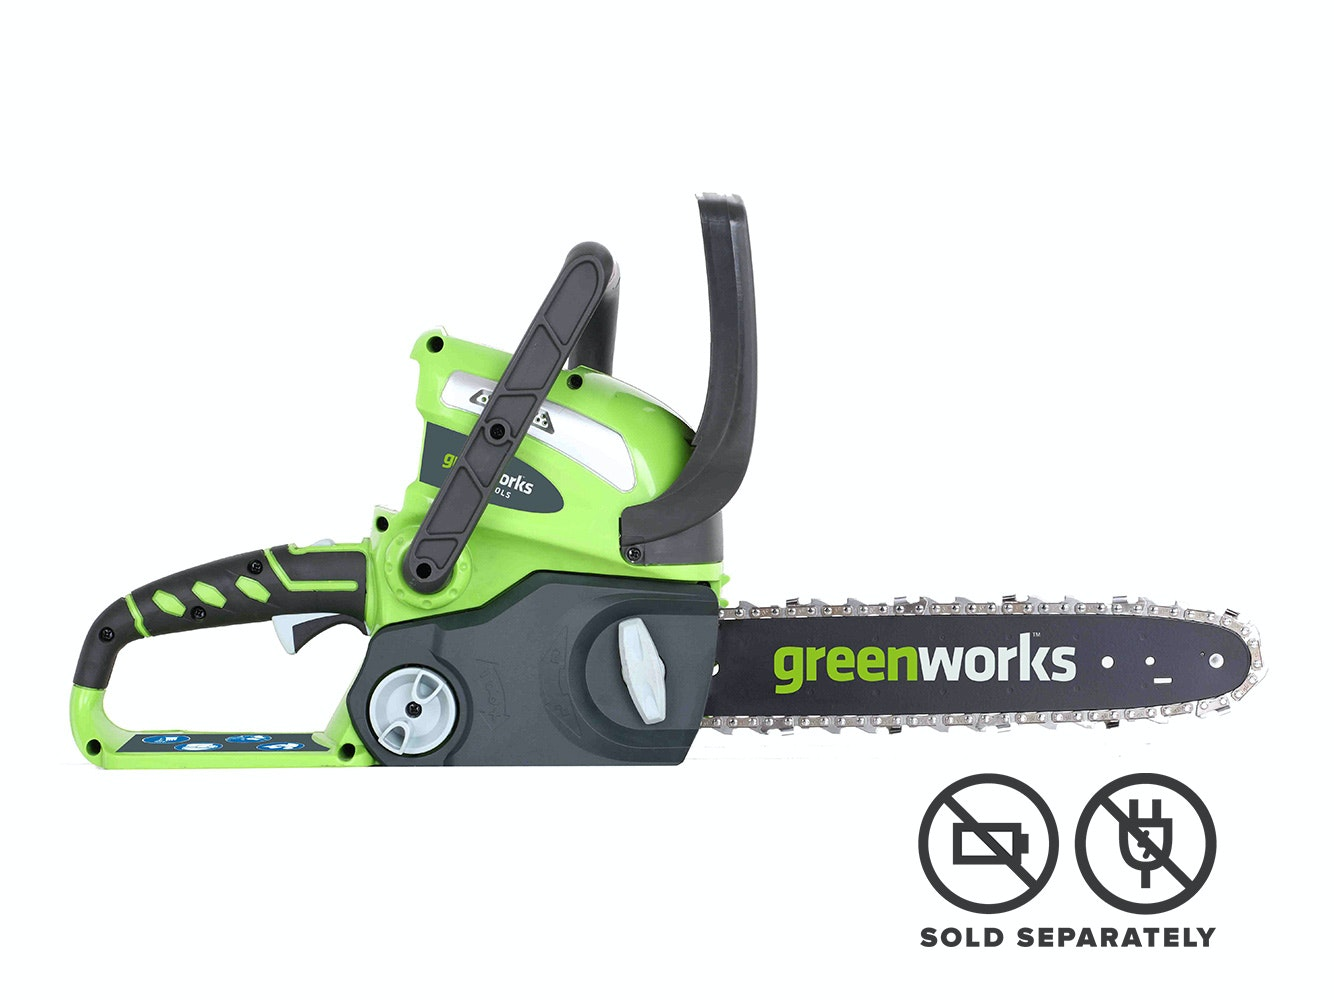 GreenWorks Chainsaw G-MAX 40V Li-Ion with 12